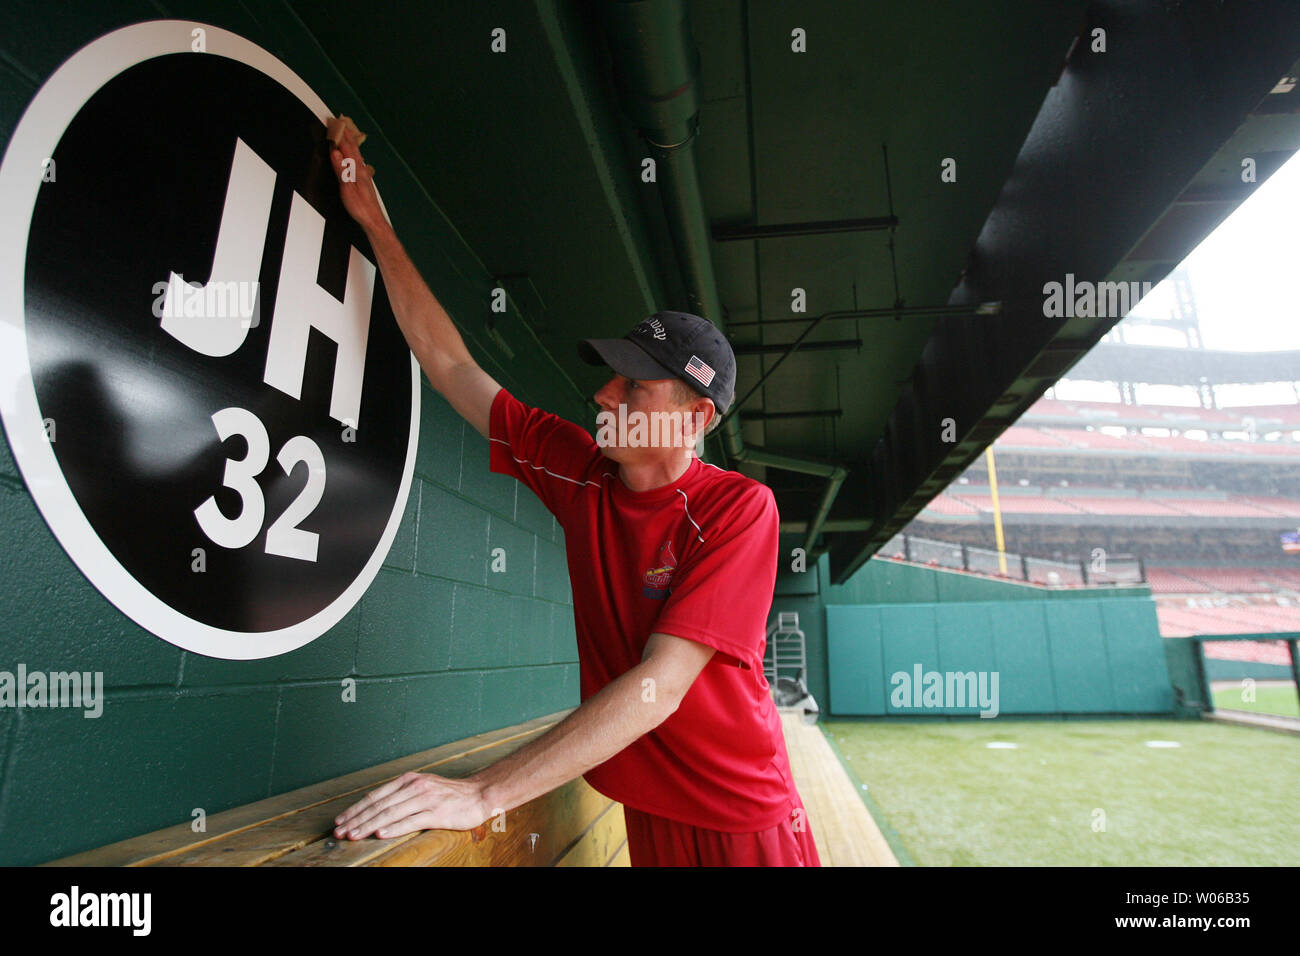 Busch Stadium grounds keeper Ryan Middleton wipes off a new